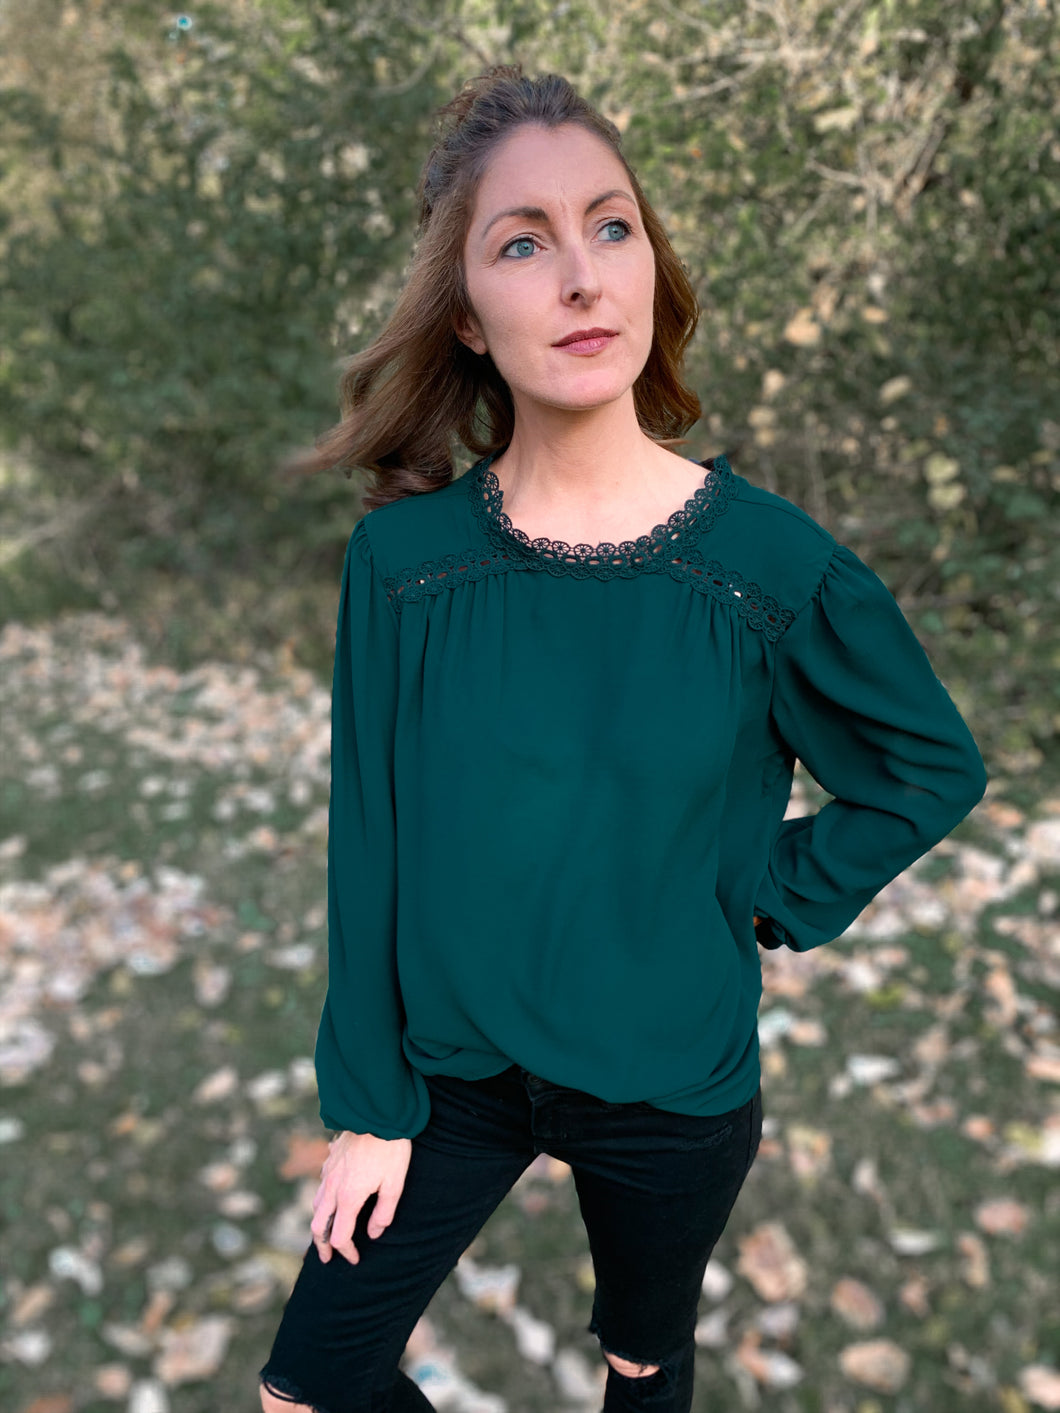 Enchanting Emerald Sky Blouse